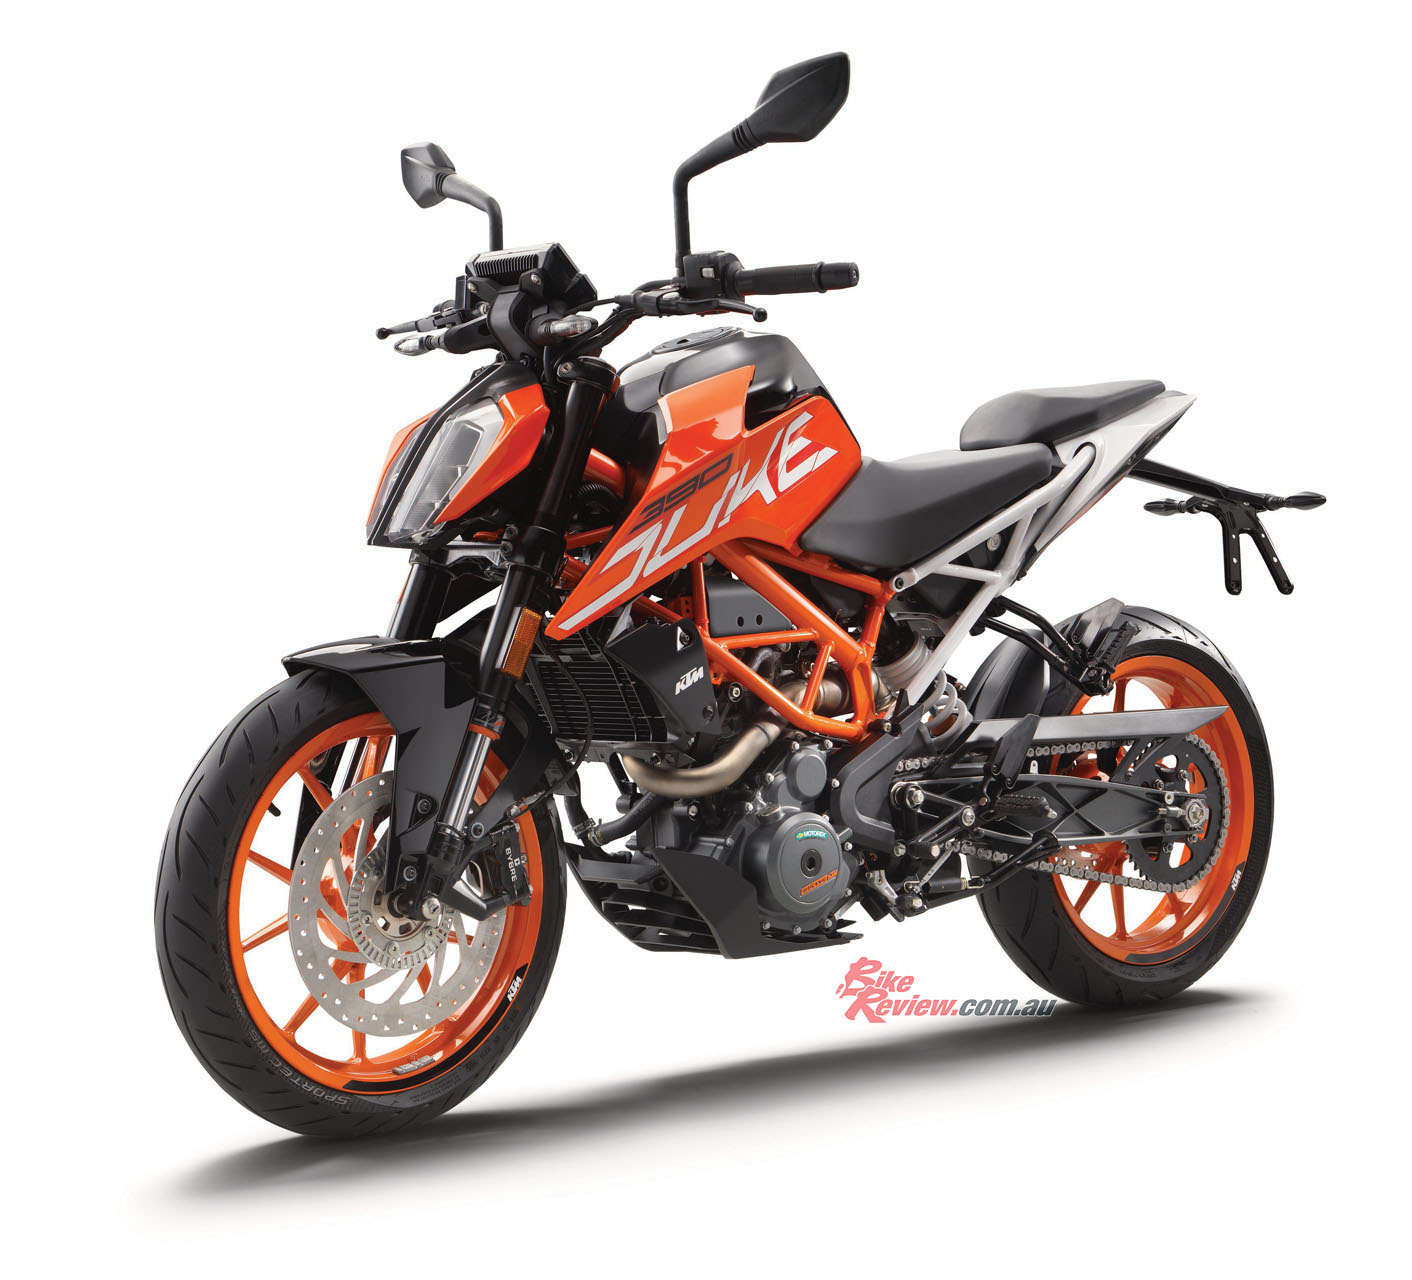 The 390 Duke looks great in both orange and white colour options.